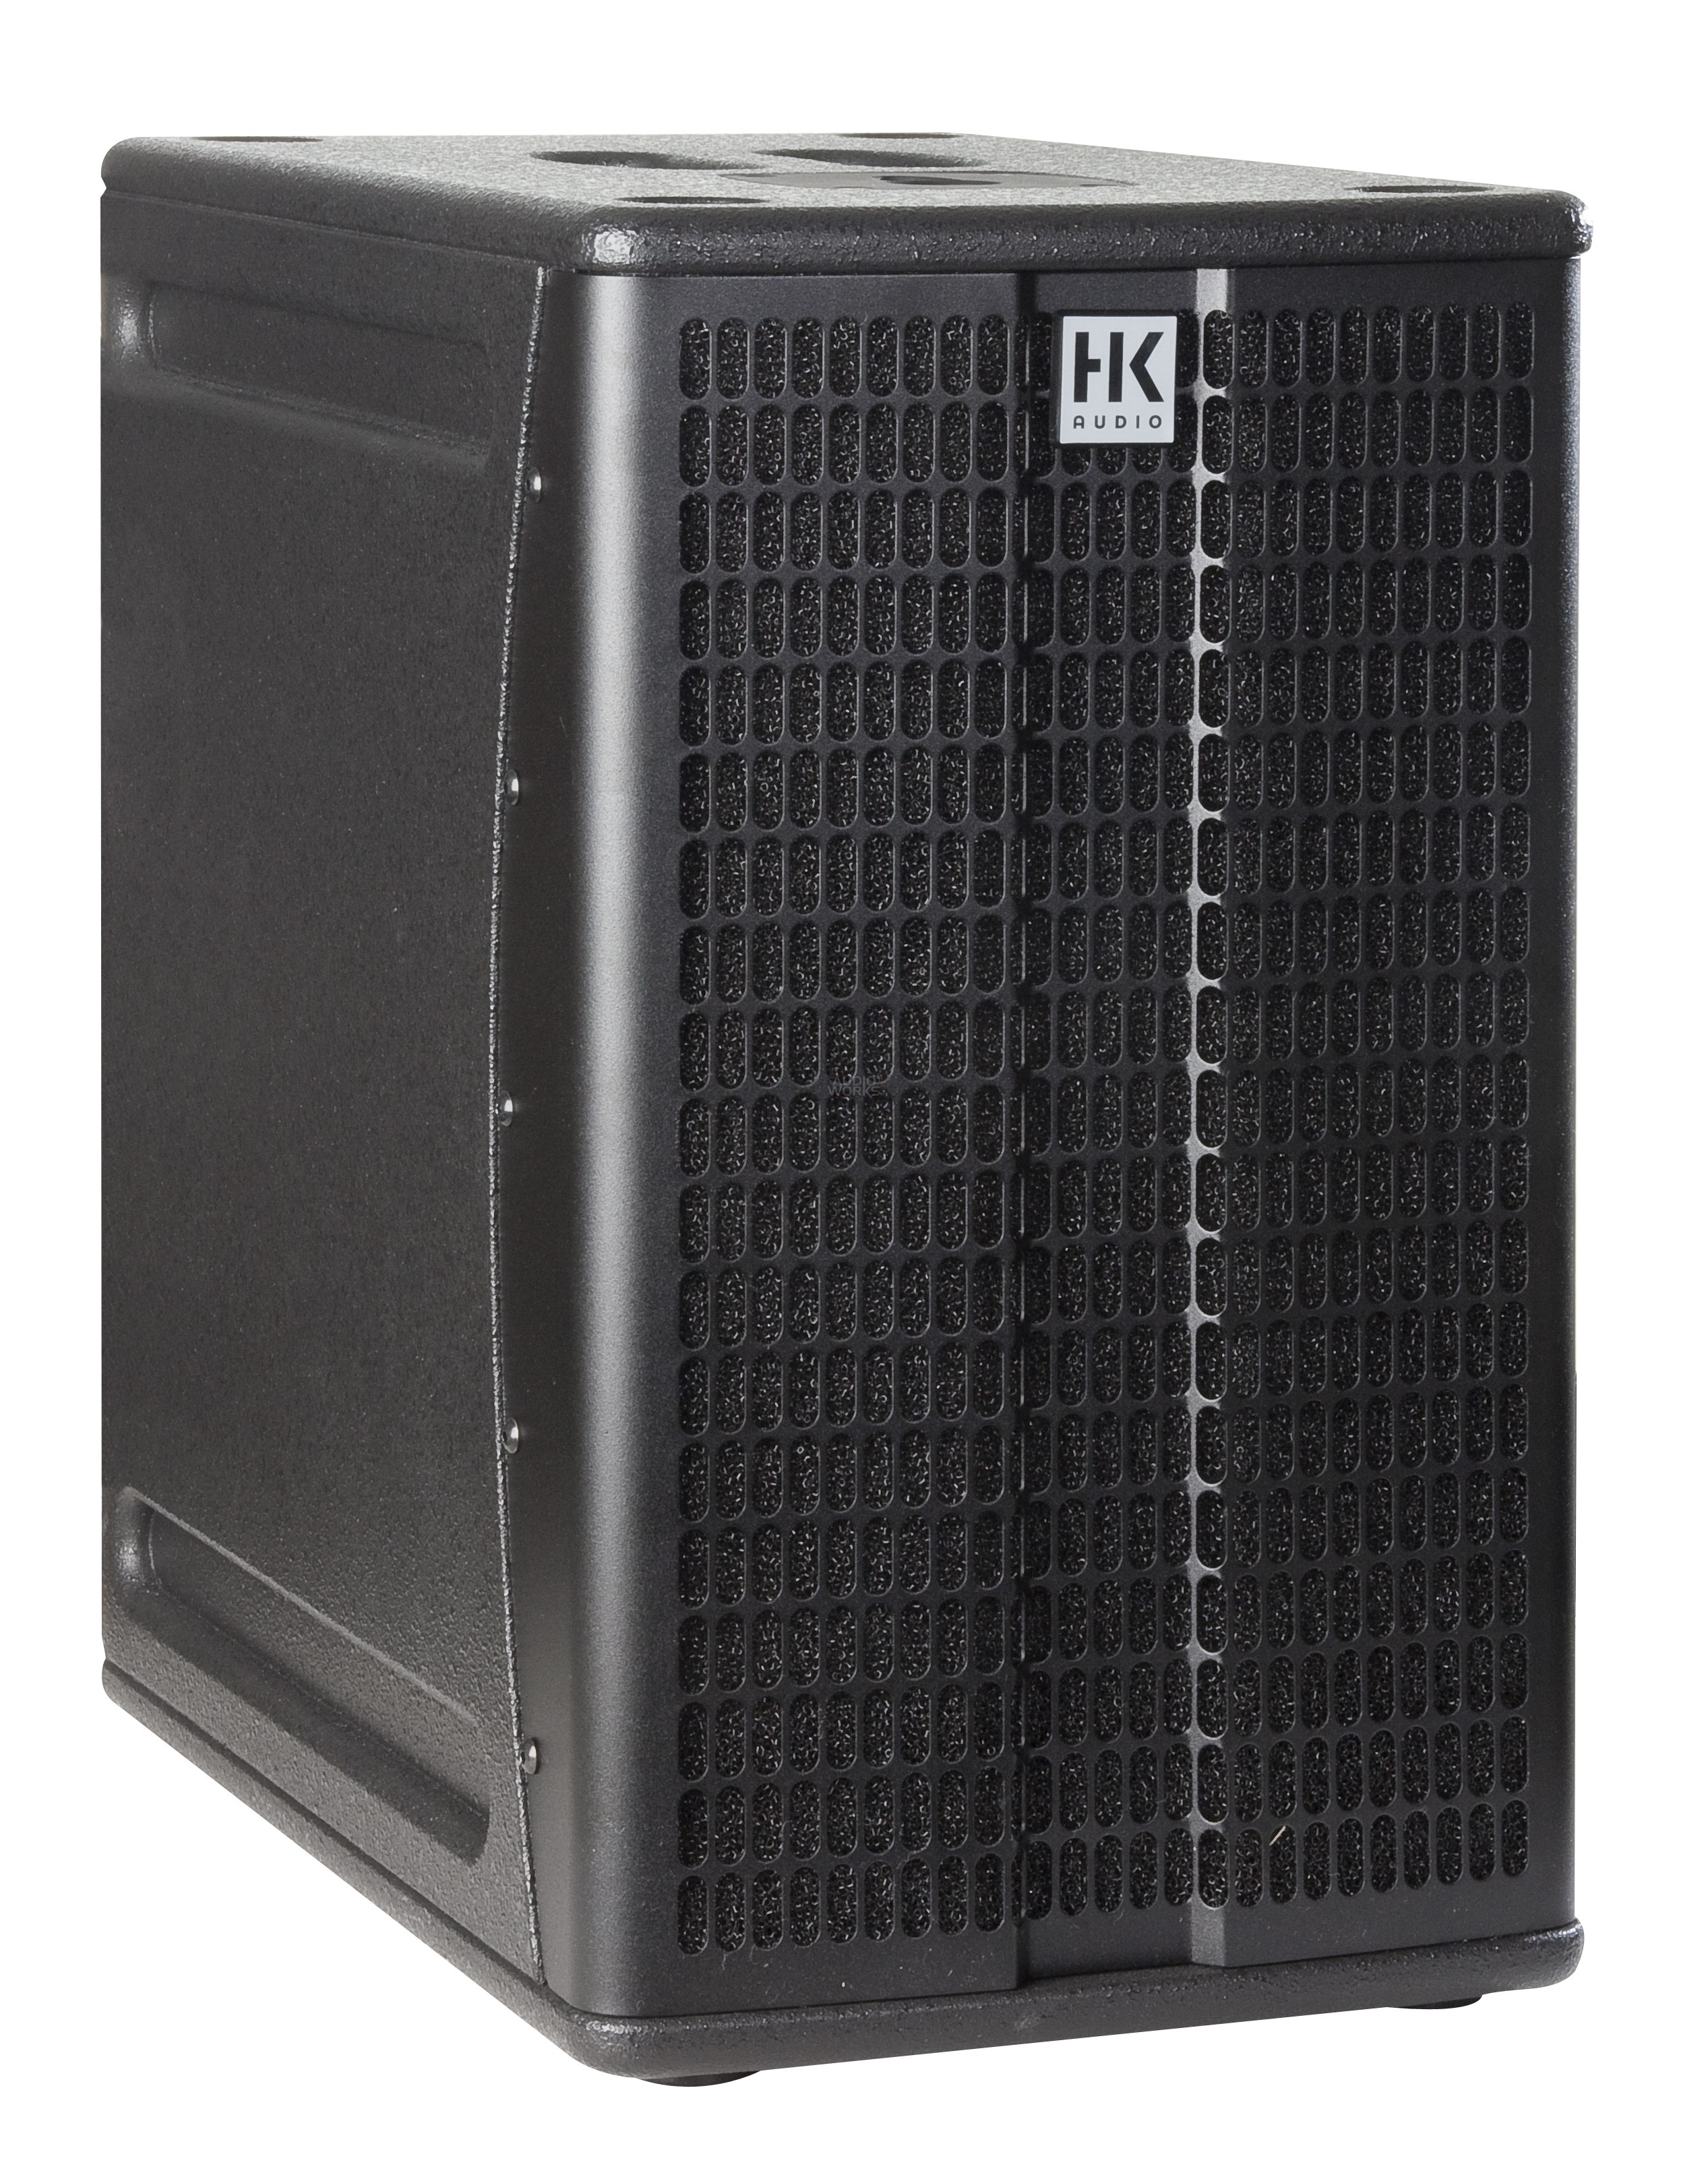 HK AUDIO ELEMENTS E110 SUB A  ACTIVE SUBWOOFER